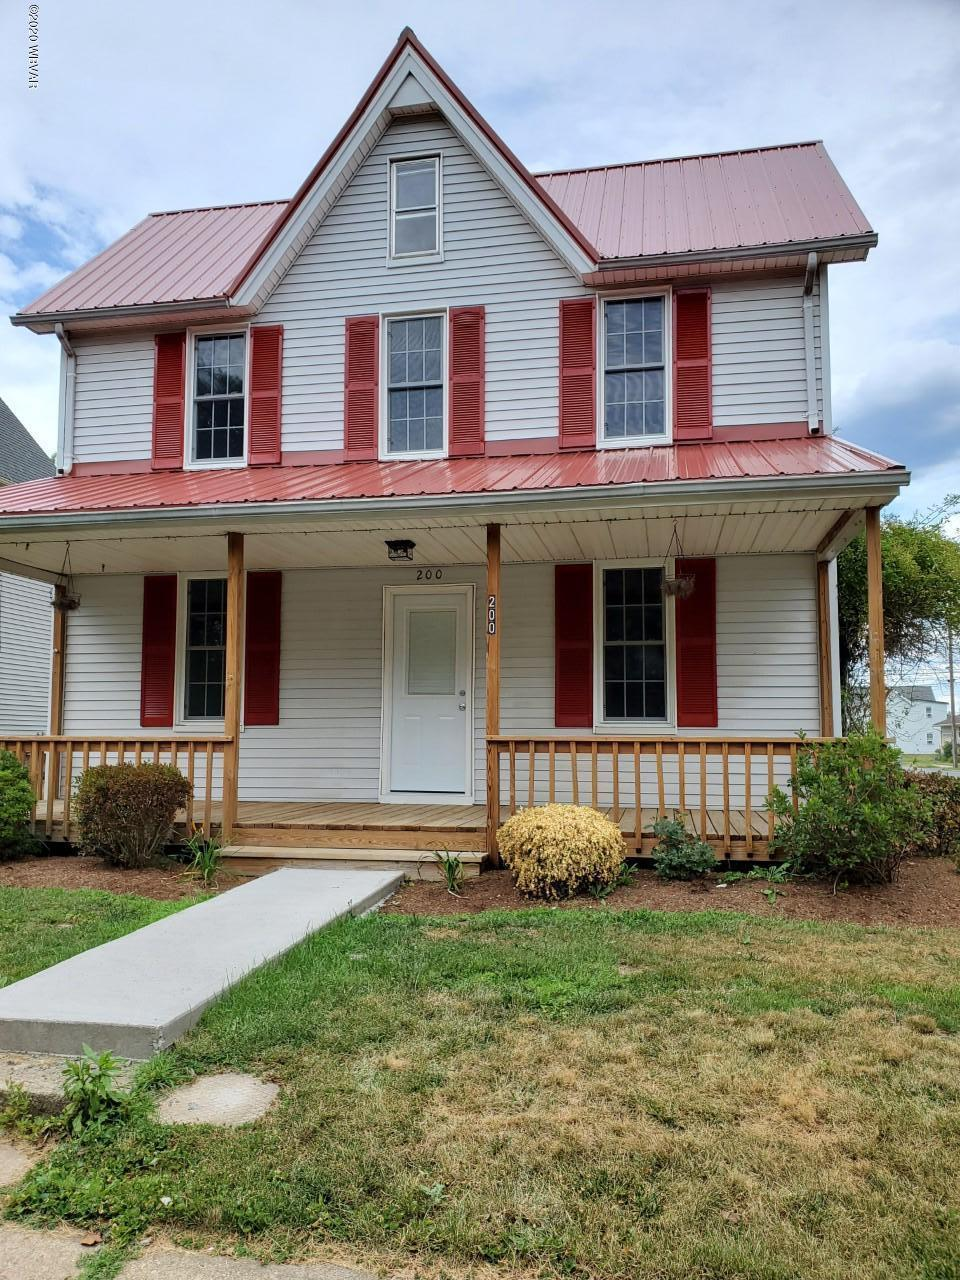 200 MONTOUR STREET, Montoursville, PA 17754, 3 Bedrooms Bedrooms, ,2.5 BathroomsBathrooms,Residential,For sale,MONTOUR,WB-90750